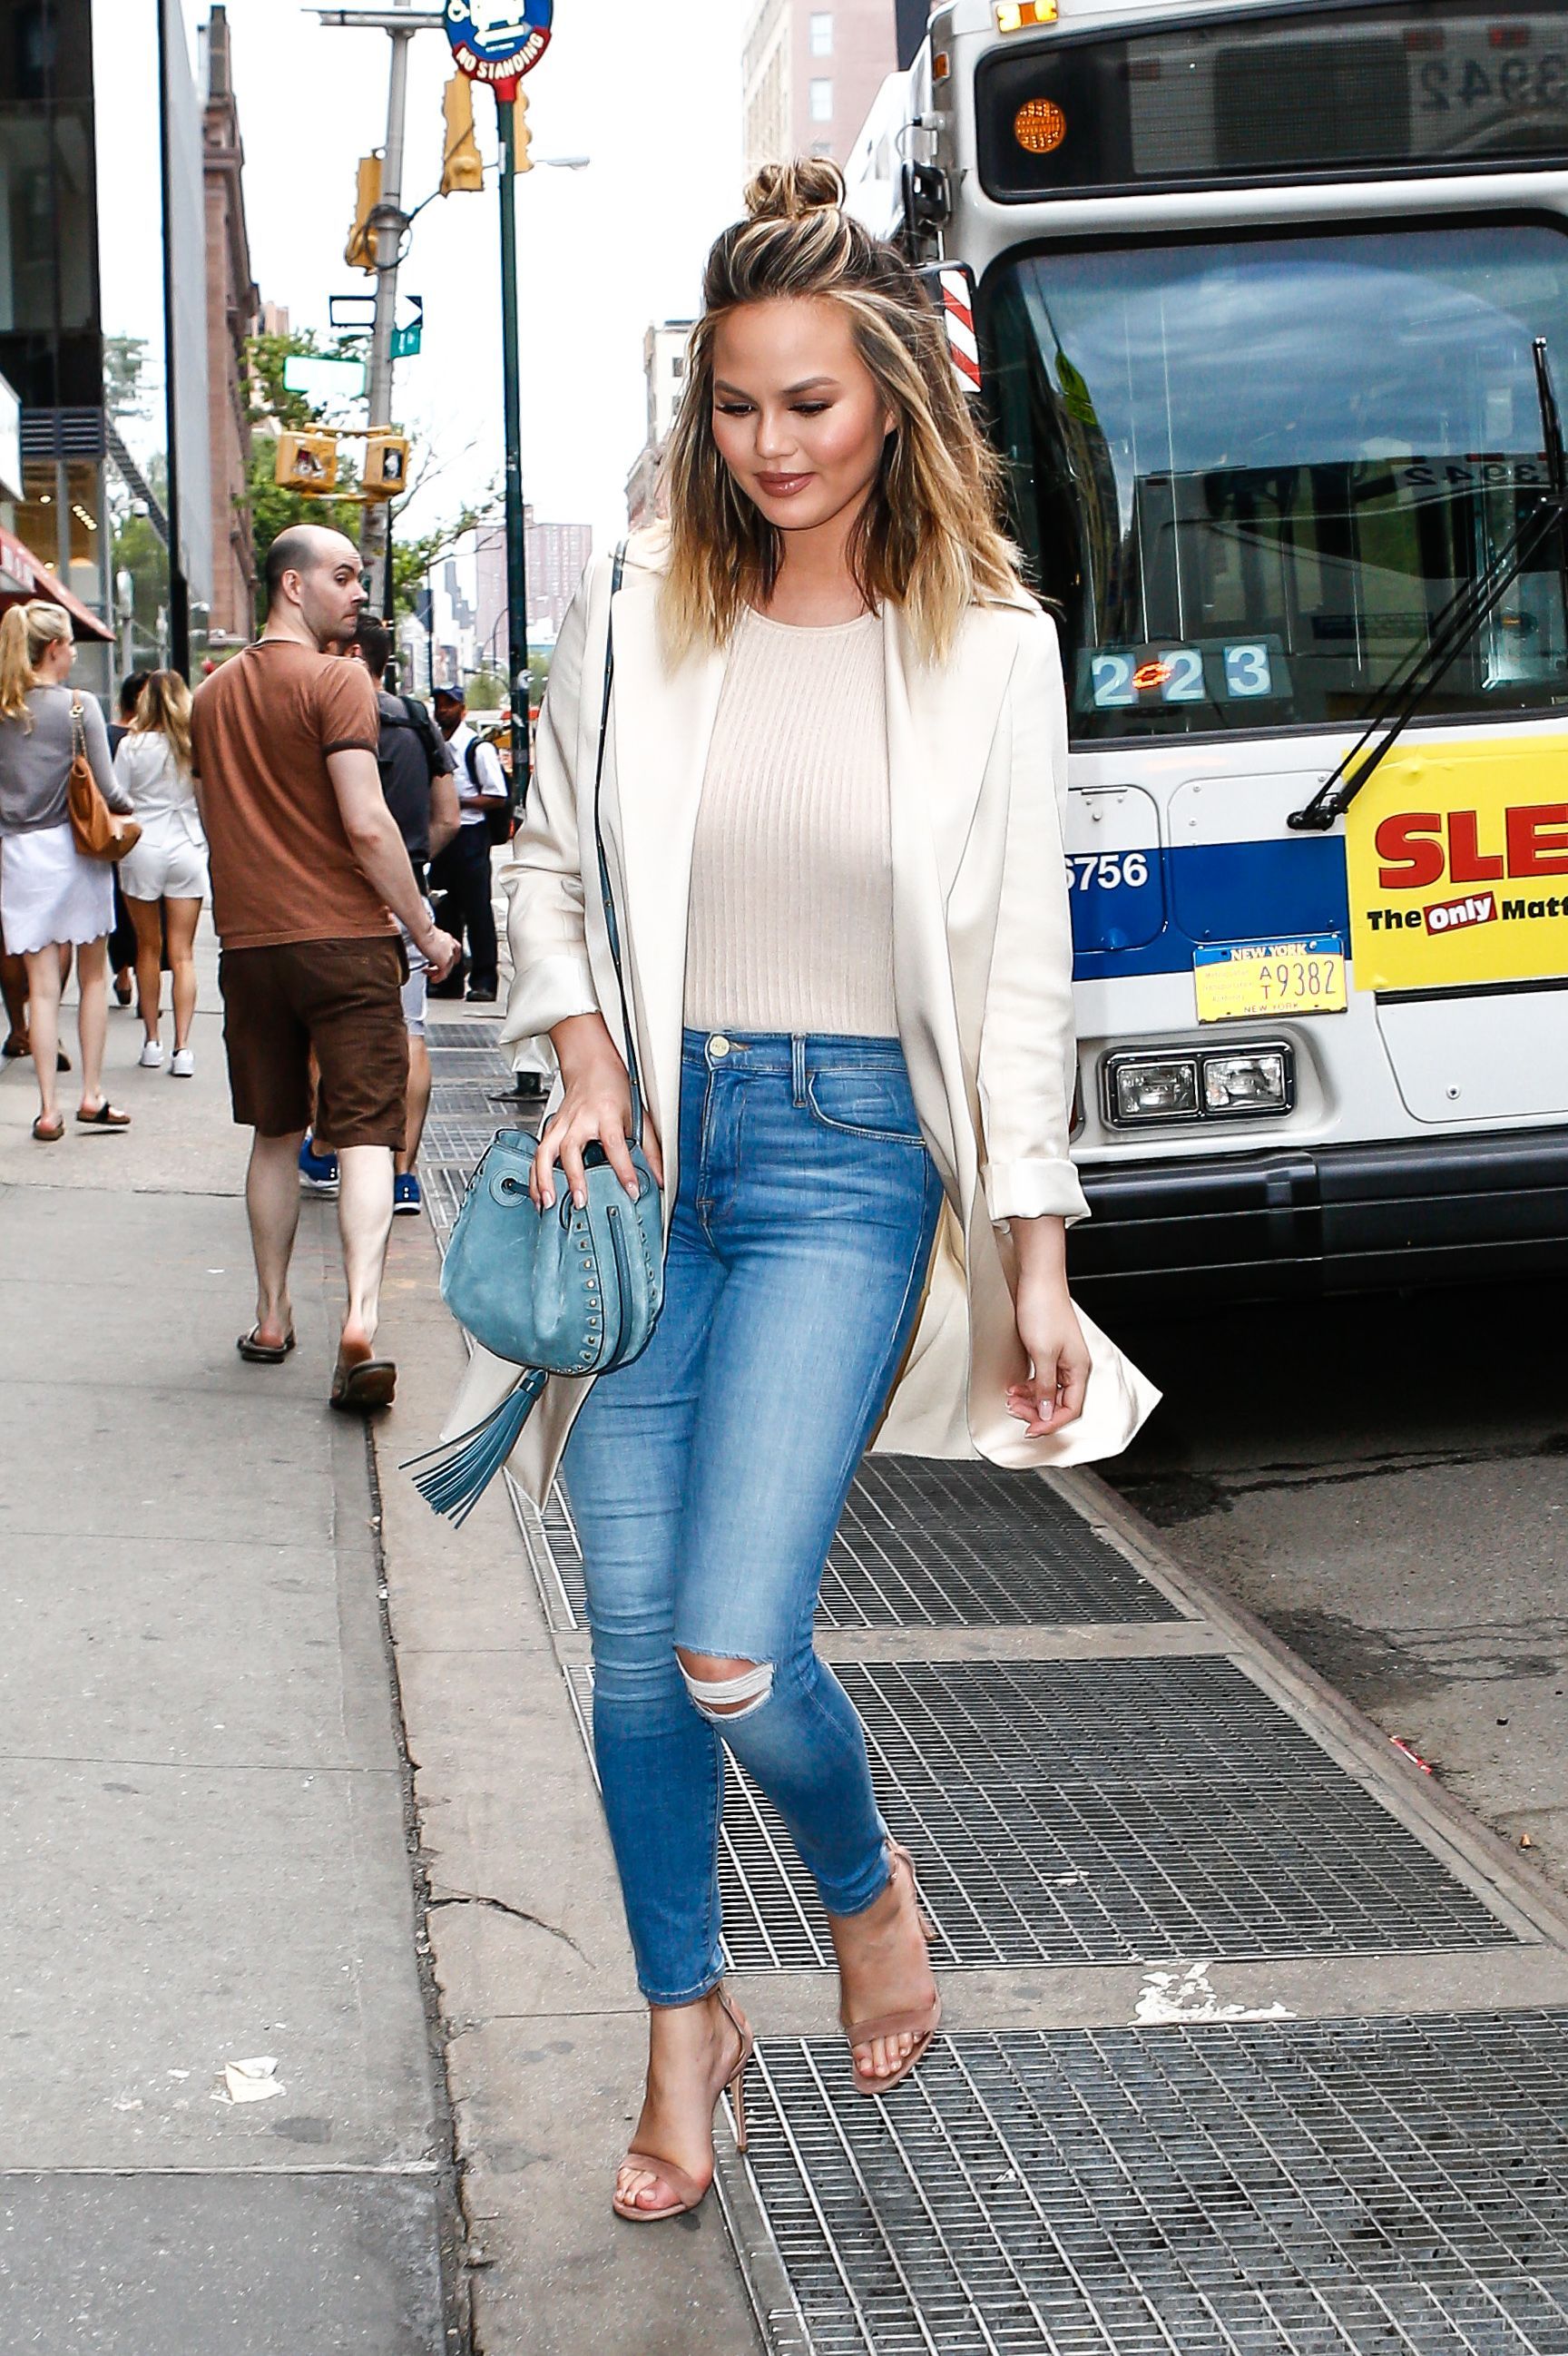 Chrissy Teigen out in NYC 6/7/16